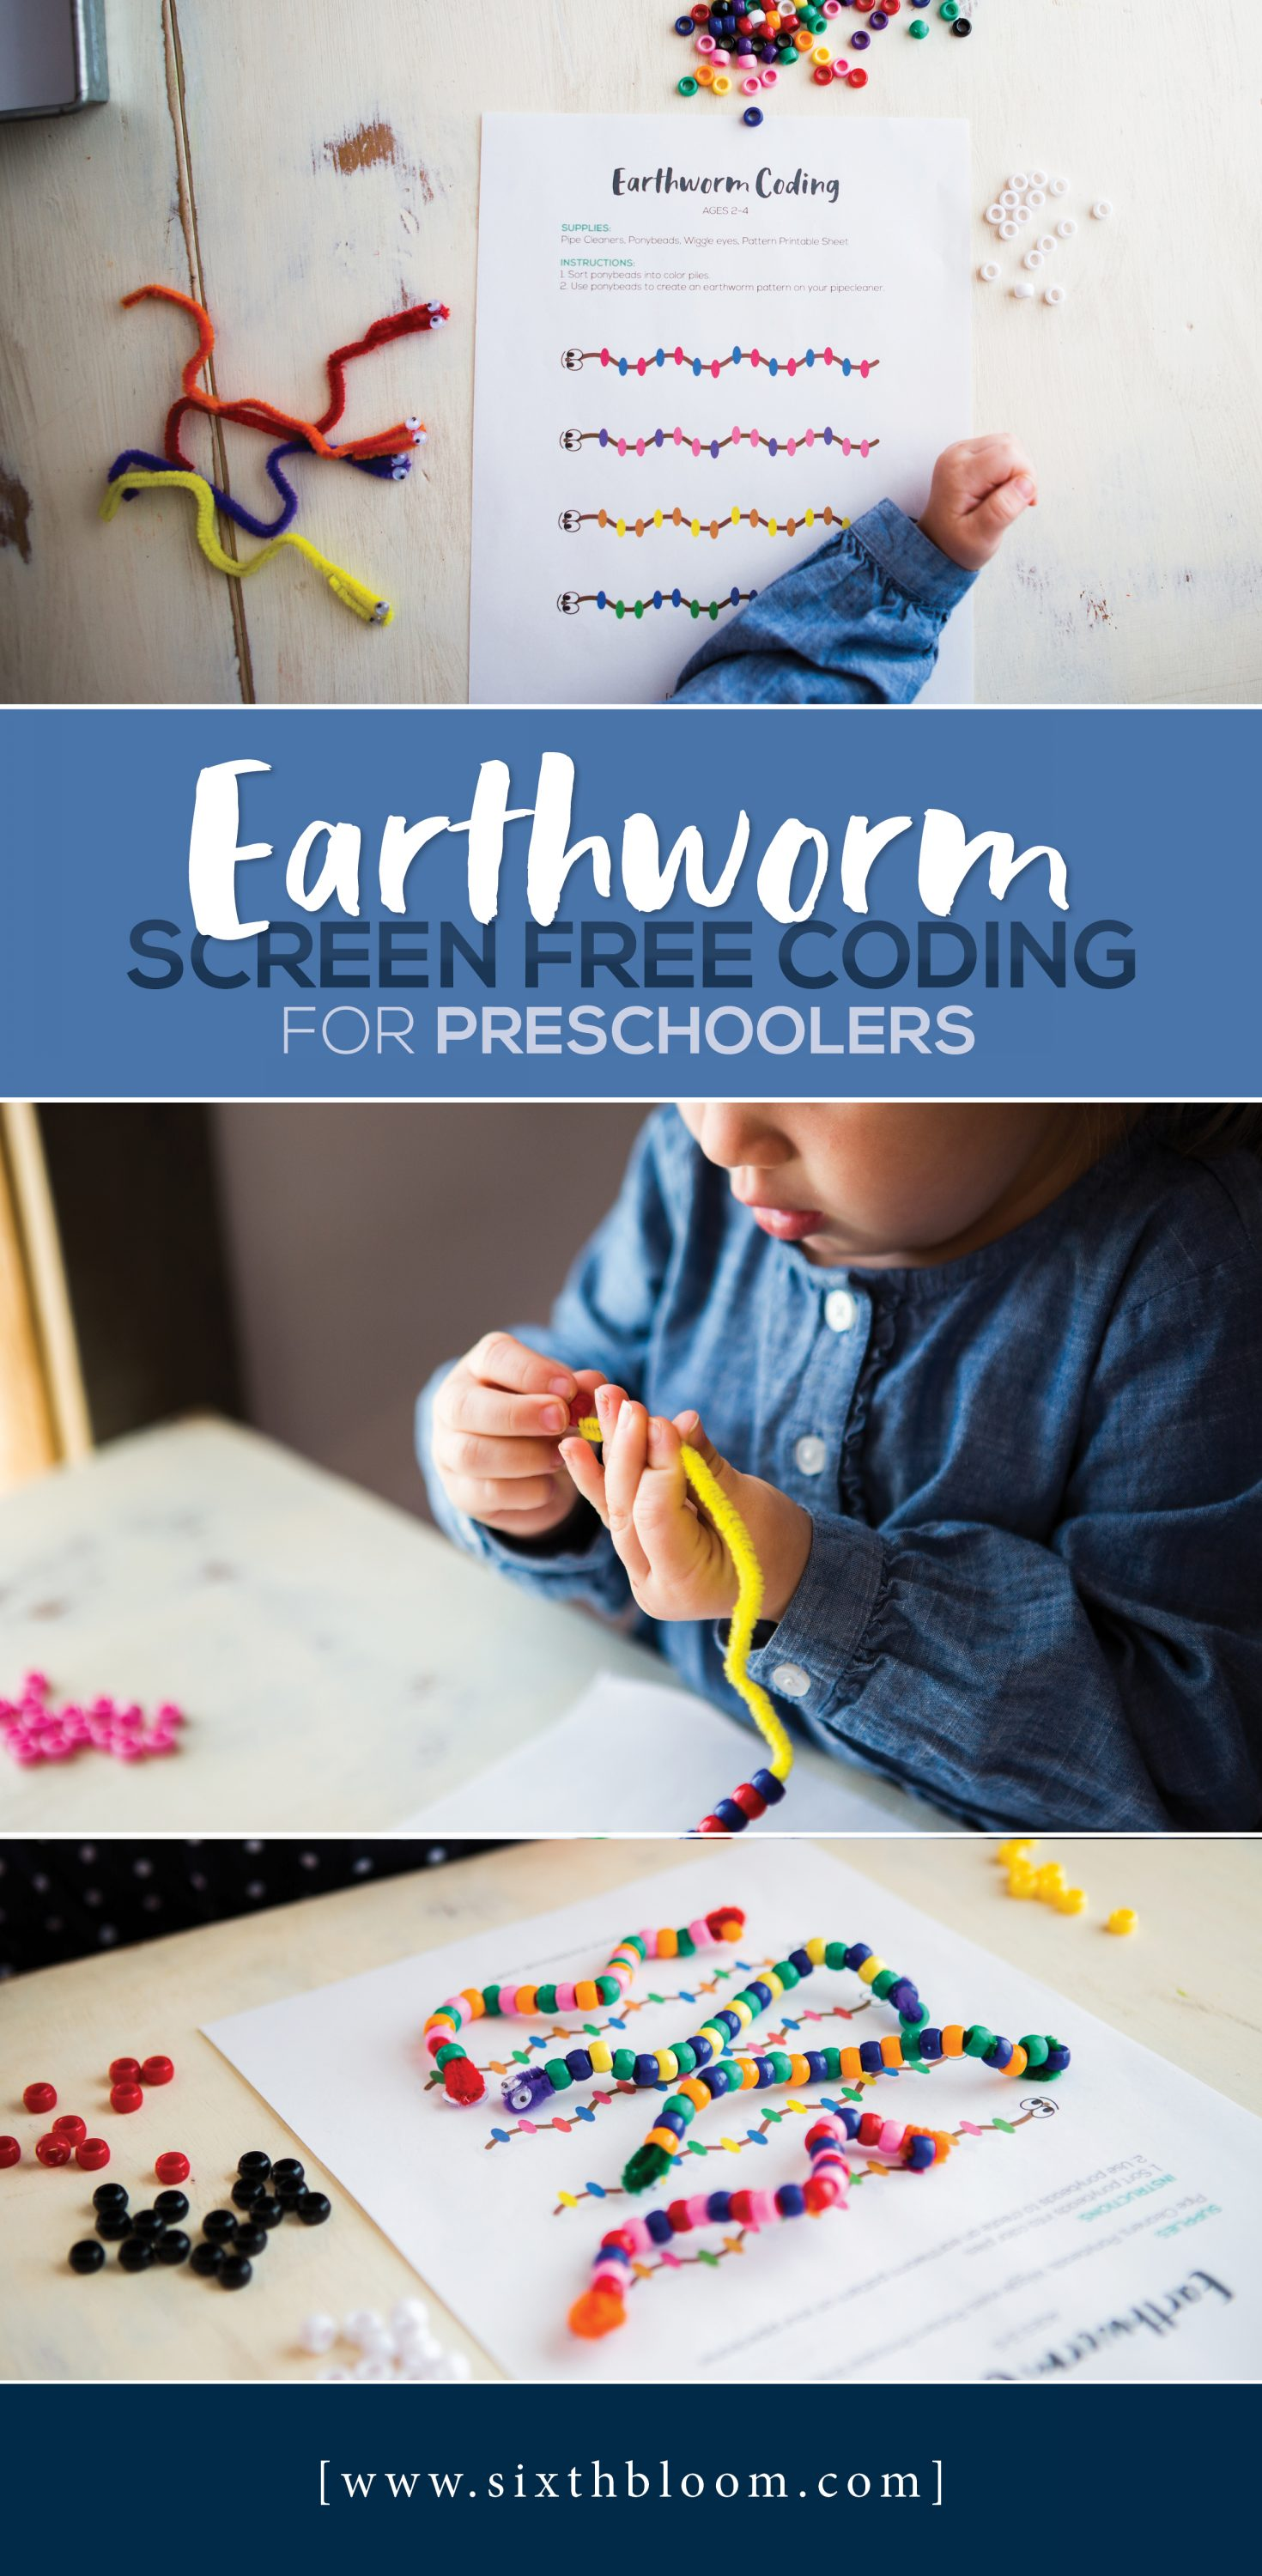 Earthworm Screen Free Coding for Preschoolers - Sixth Bloom ...